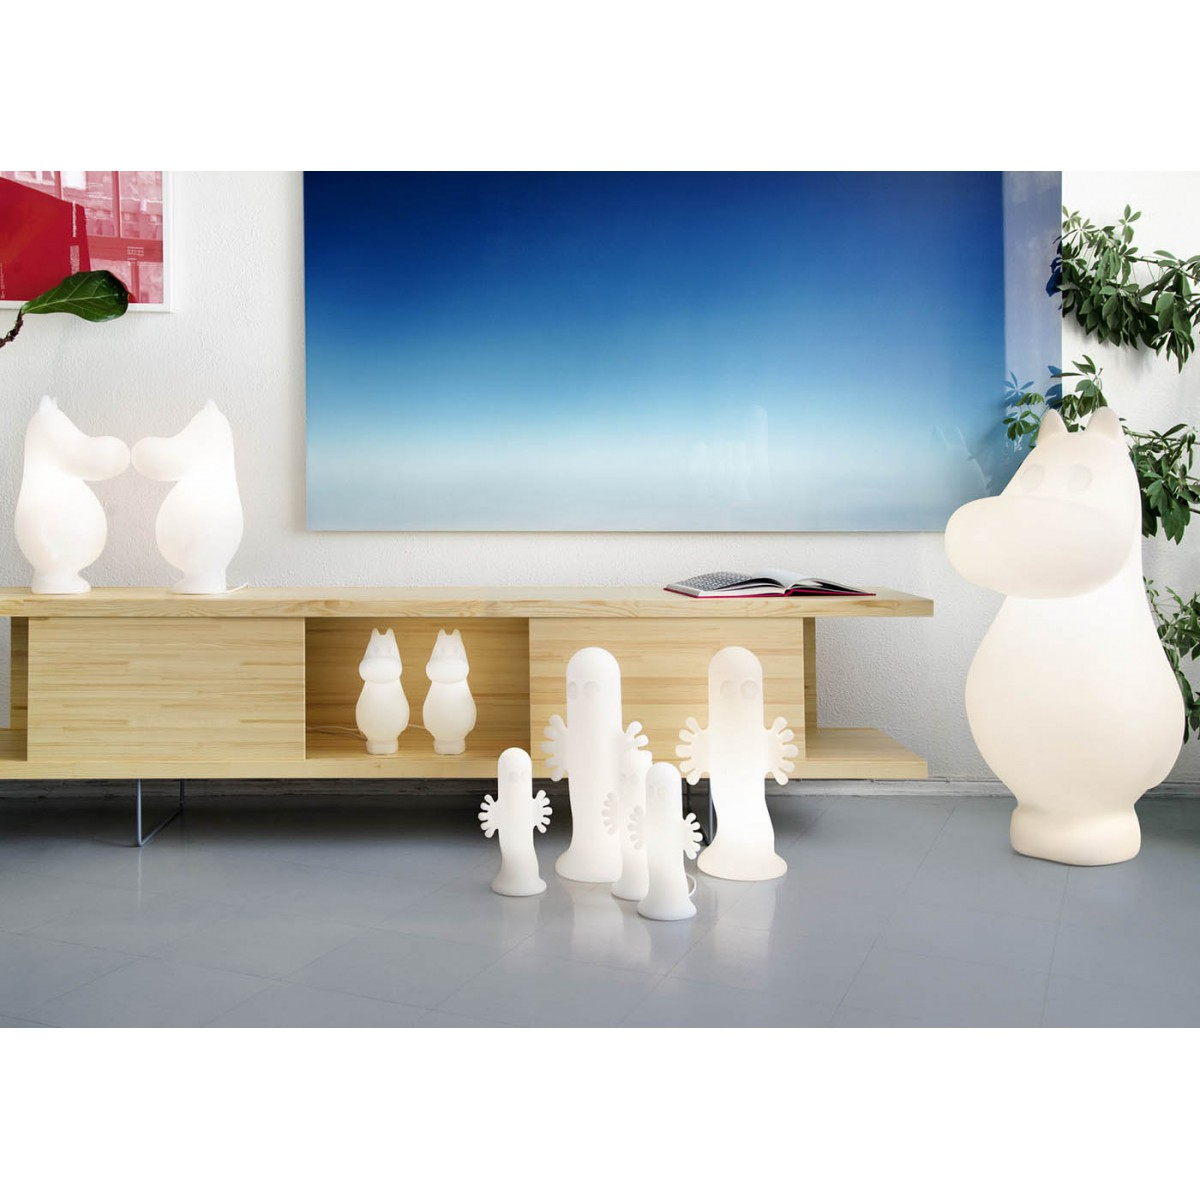 lampe d 39 ambiance originale moomin par harri koskinen. Black Bedroom Furniture Sets. Home Design Ideas